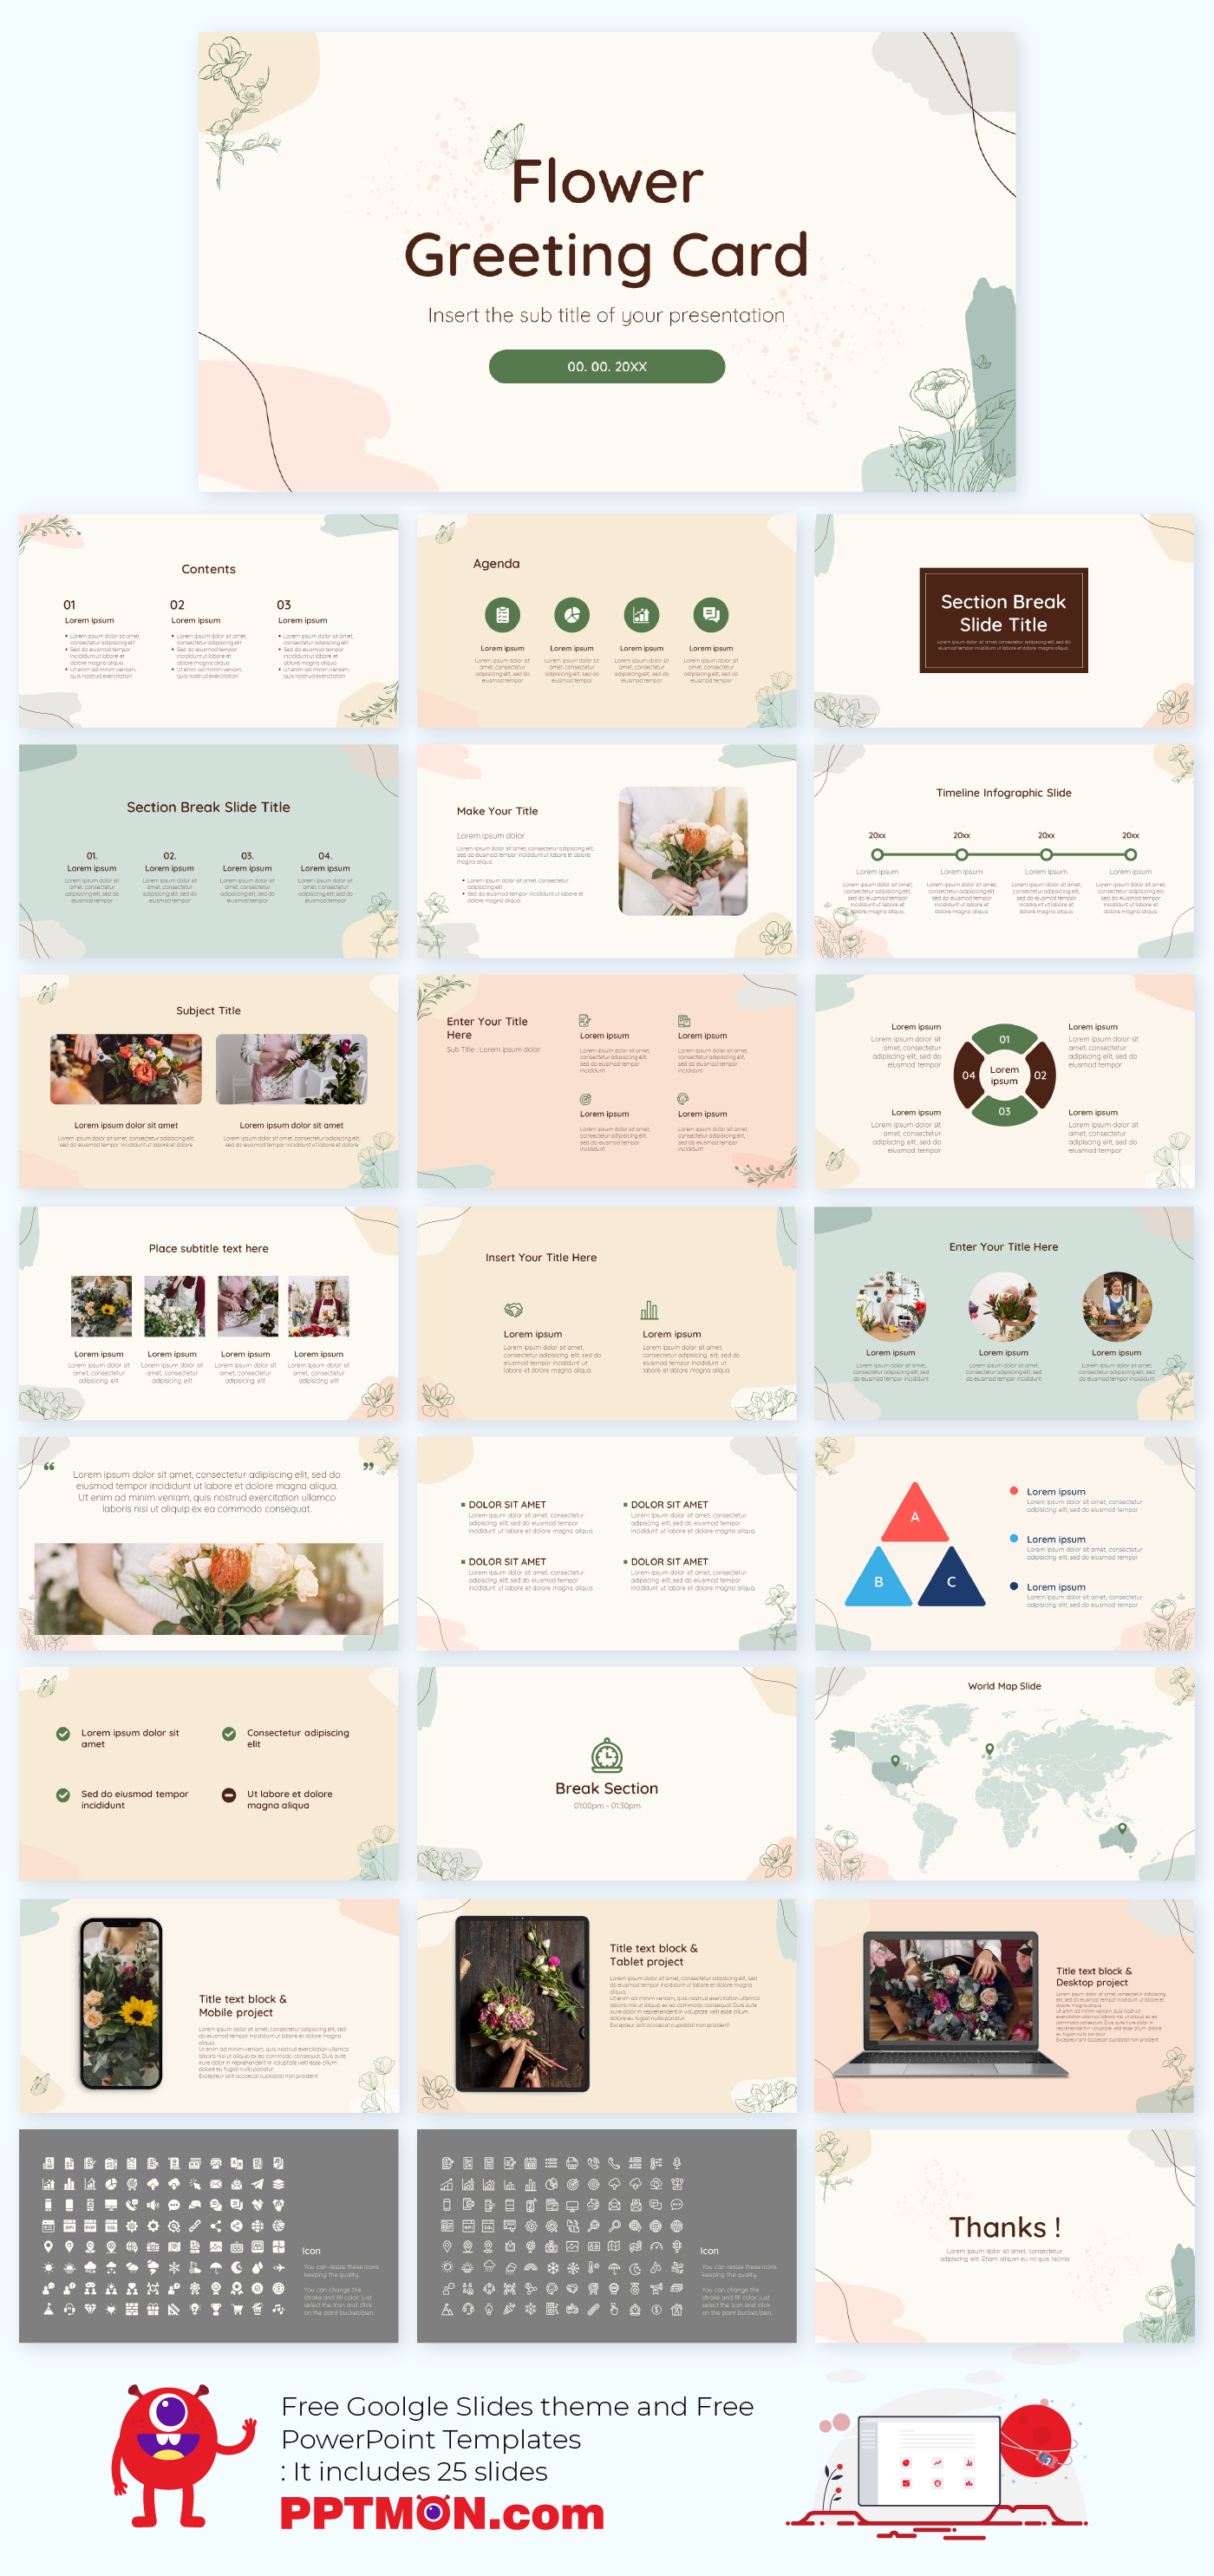 Flower Greeting Card Free Powerpoint Template And Google Slides Theme Presentation By P Powerpoint Templates Powerpoint Design Templates Google Slides Themes